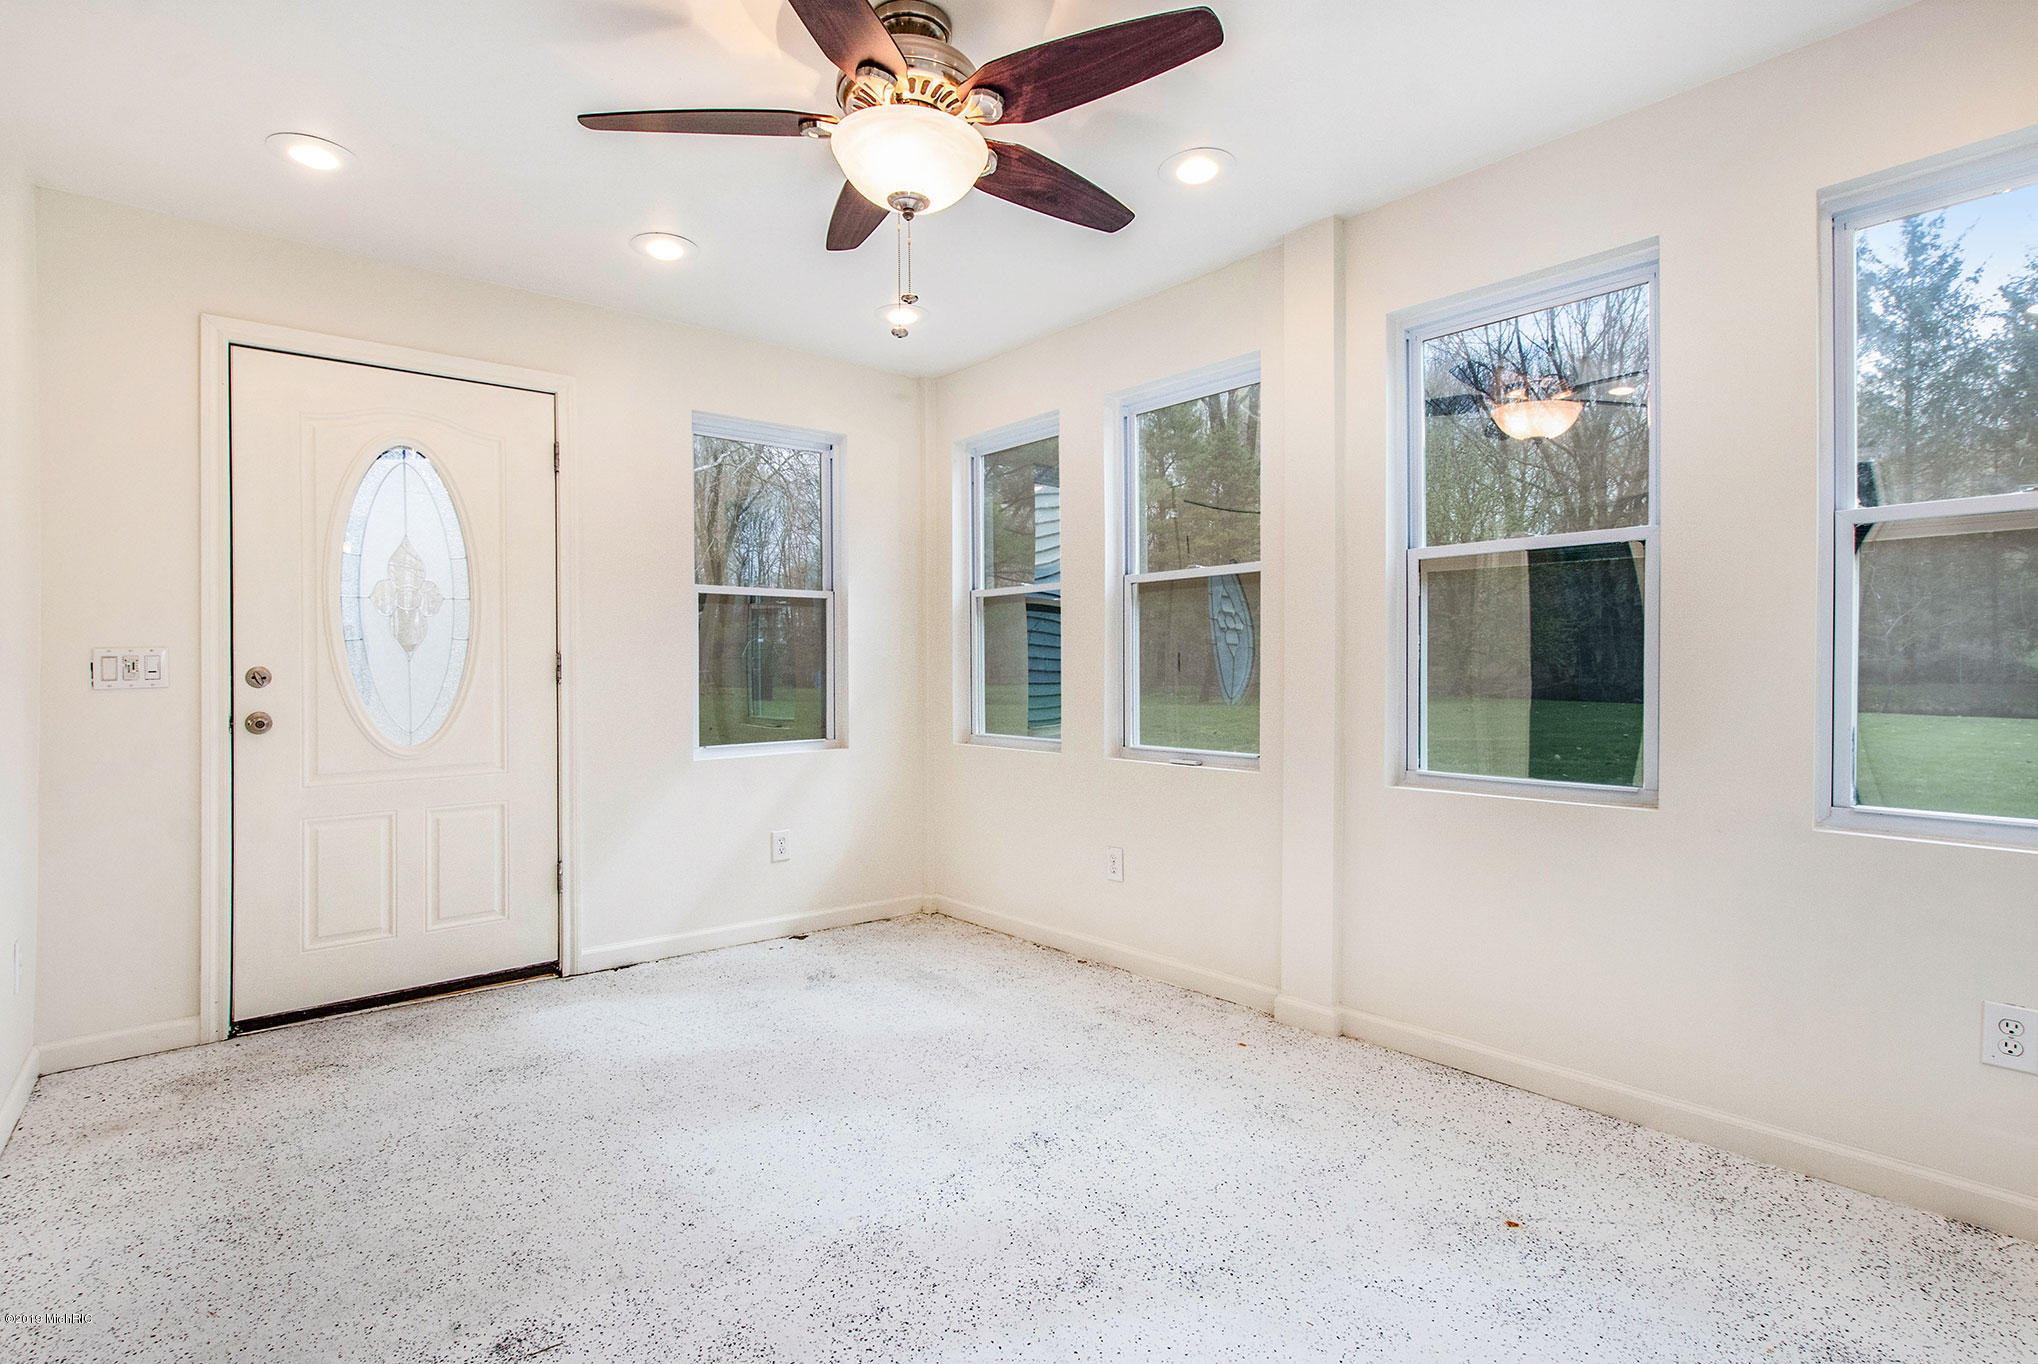 3 season room with walkout